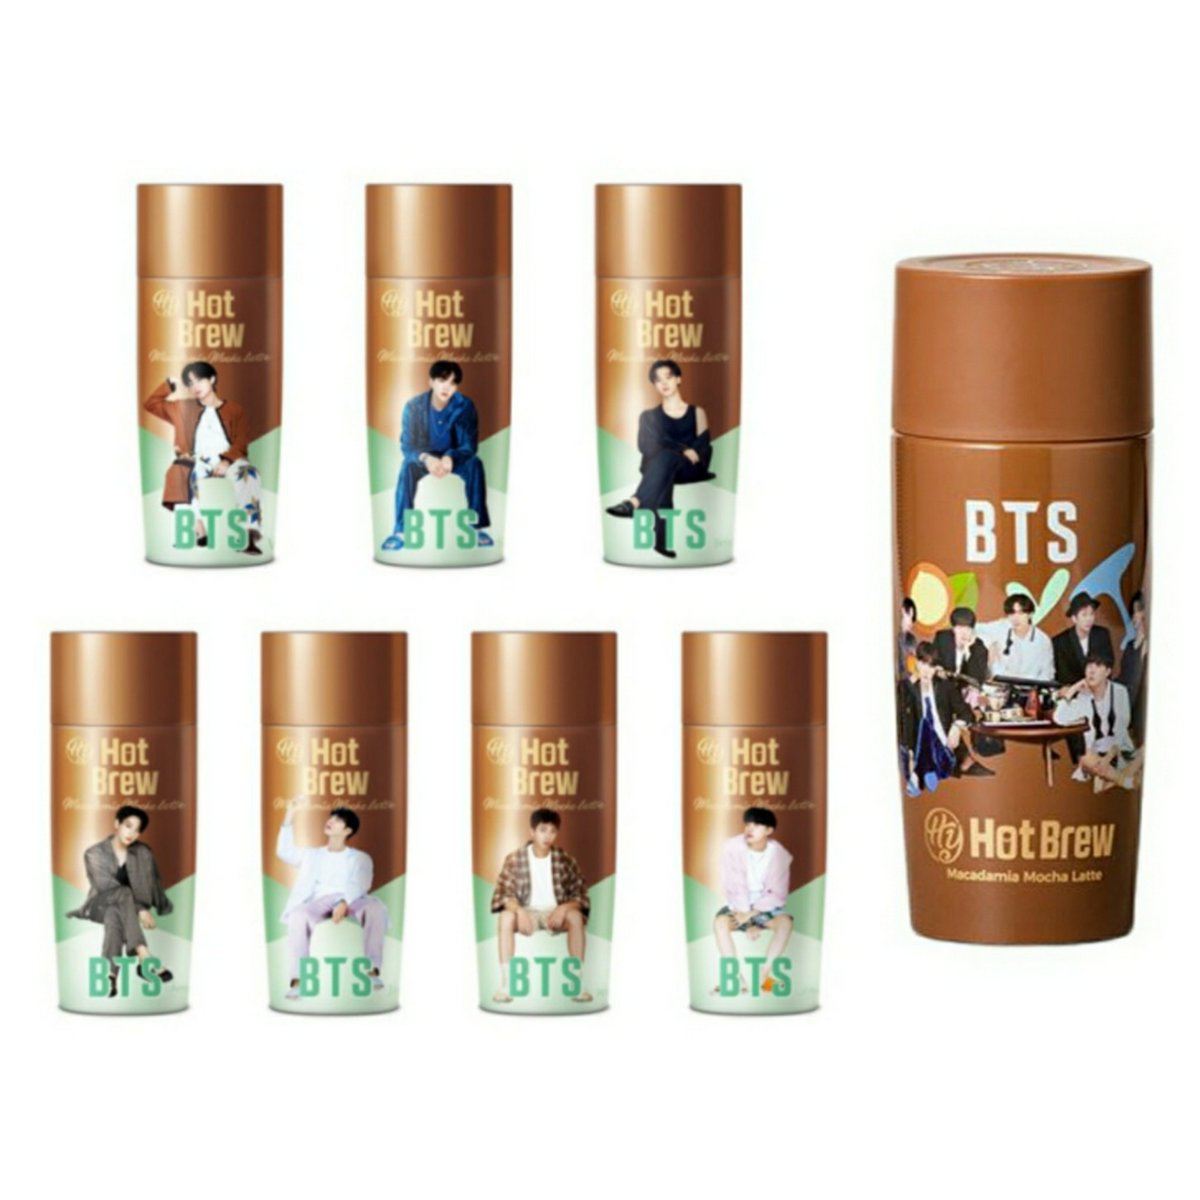 [PREORDER] BTS Hot Brew Macadamia Mocha Latte. ❣  #DM to reserve your slot - will proceed once all slots are taken. 😻  Individual/Group (24ea): 🏷 RM20/ea 📦 TBA  #KoreaYakult #BTSCoffee #BTS_BE #BTSARMY #Malaysia #PreOrder  📣  🔁 Help RT @BTStrading_MY